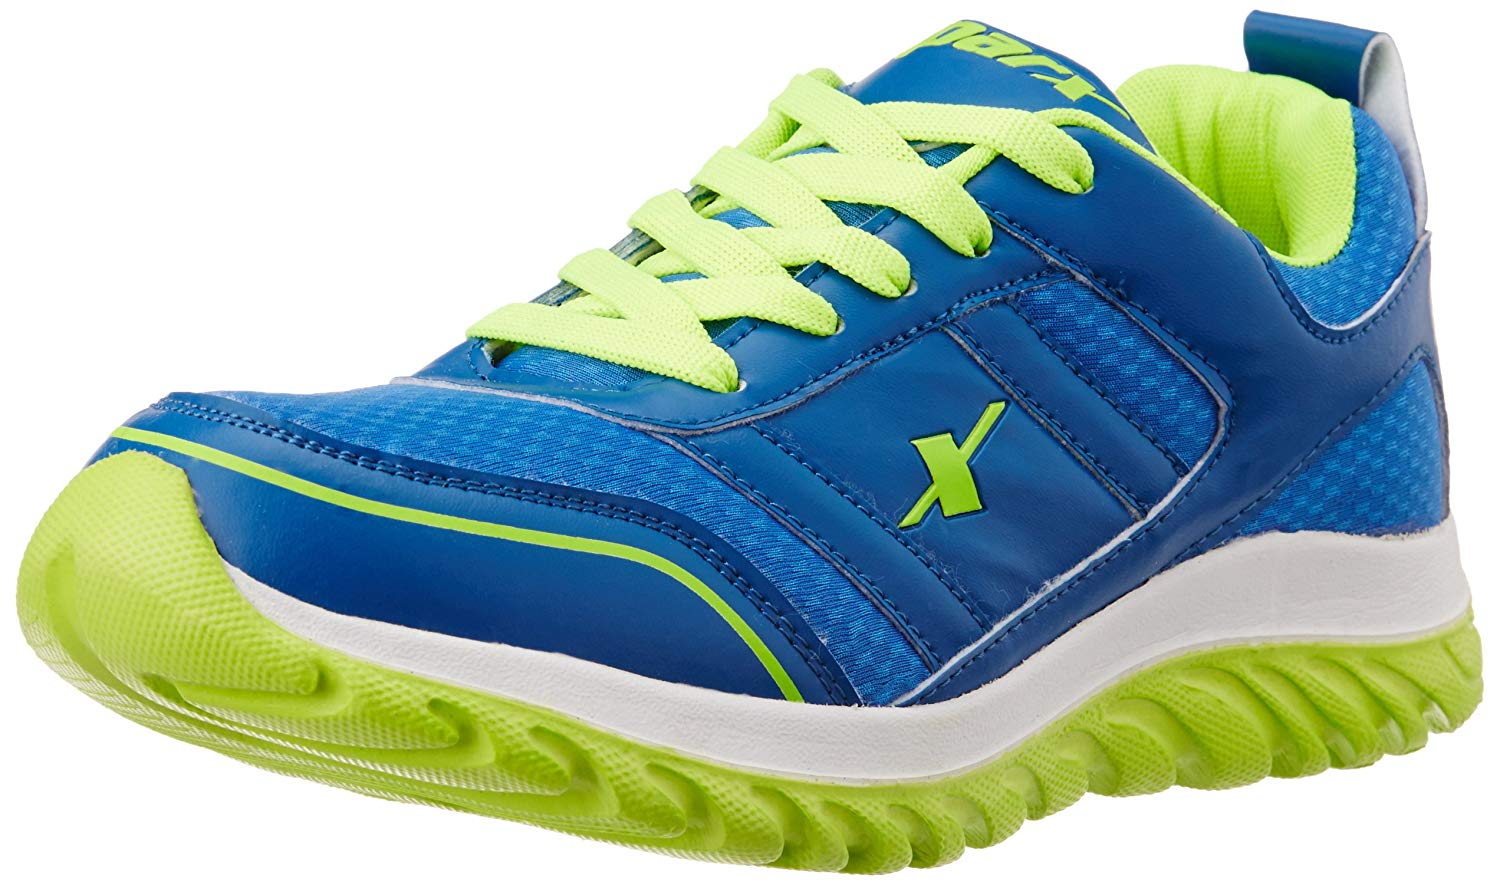 SPARX Mens Blue and Fluorescent Green Running Shoes - 8 UK image 1